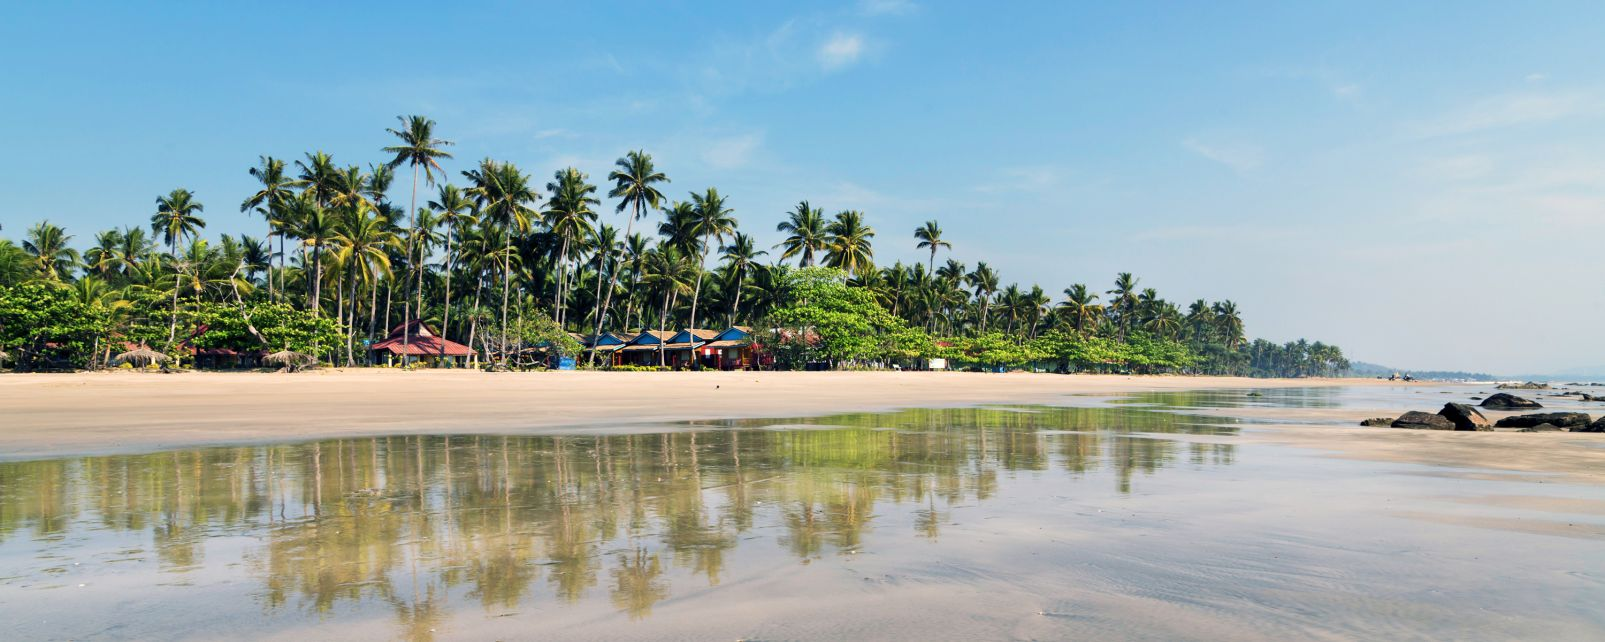 Seaside resorts, Sea resorts, Coasts, Myanmar